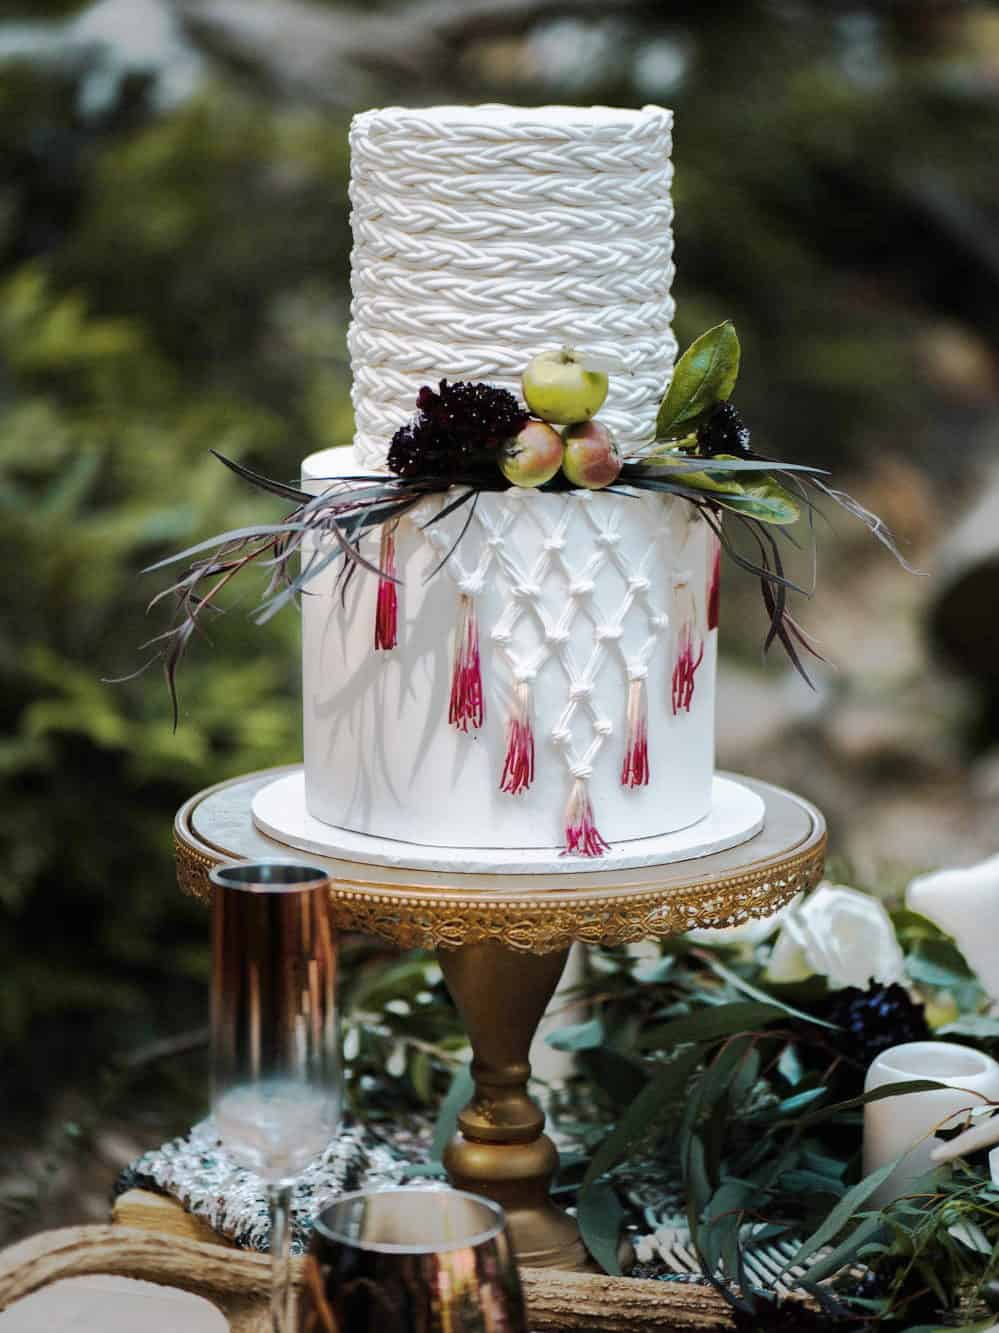 wedding cake with crochet texture and fruits